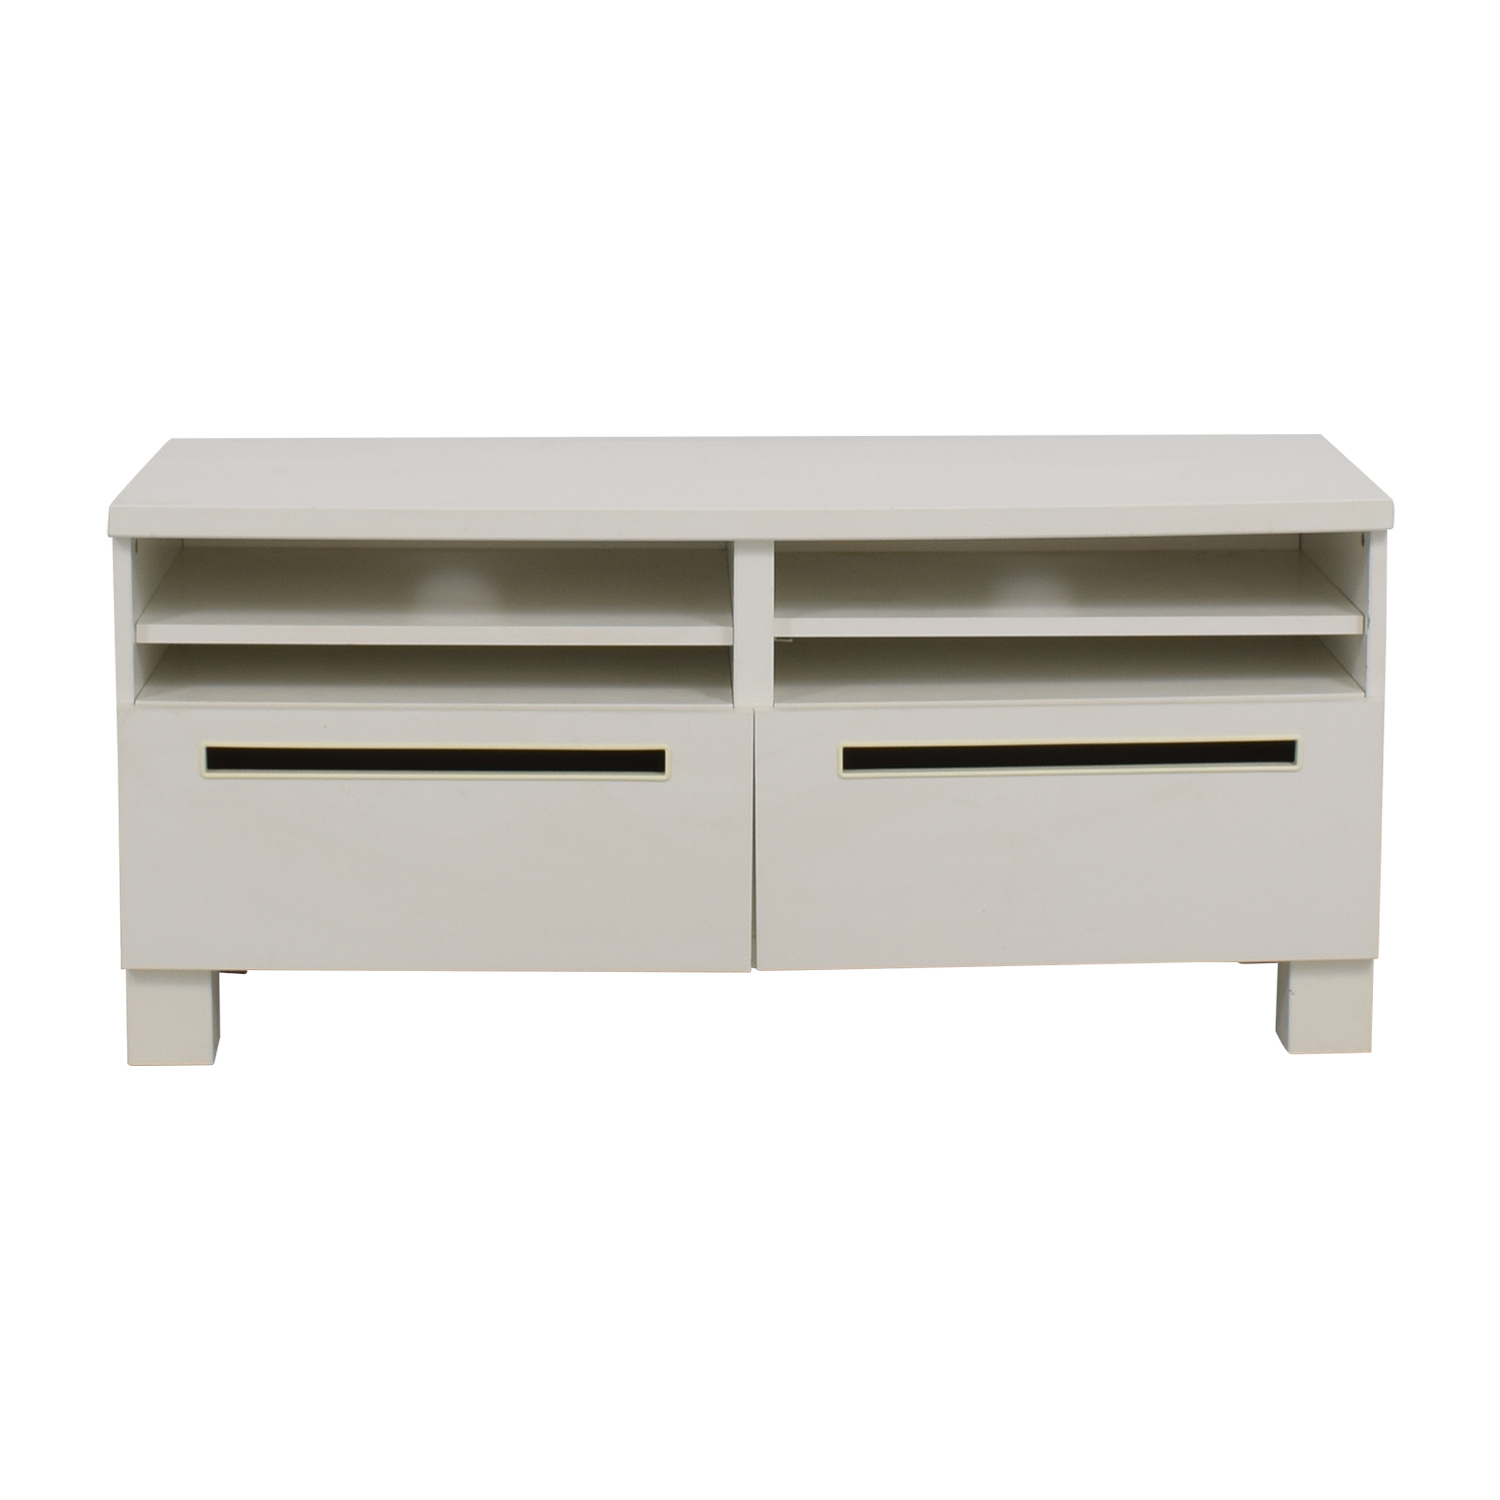 IKEA IKEA White Media Unit price